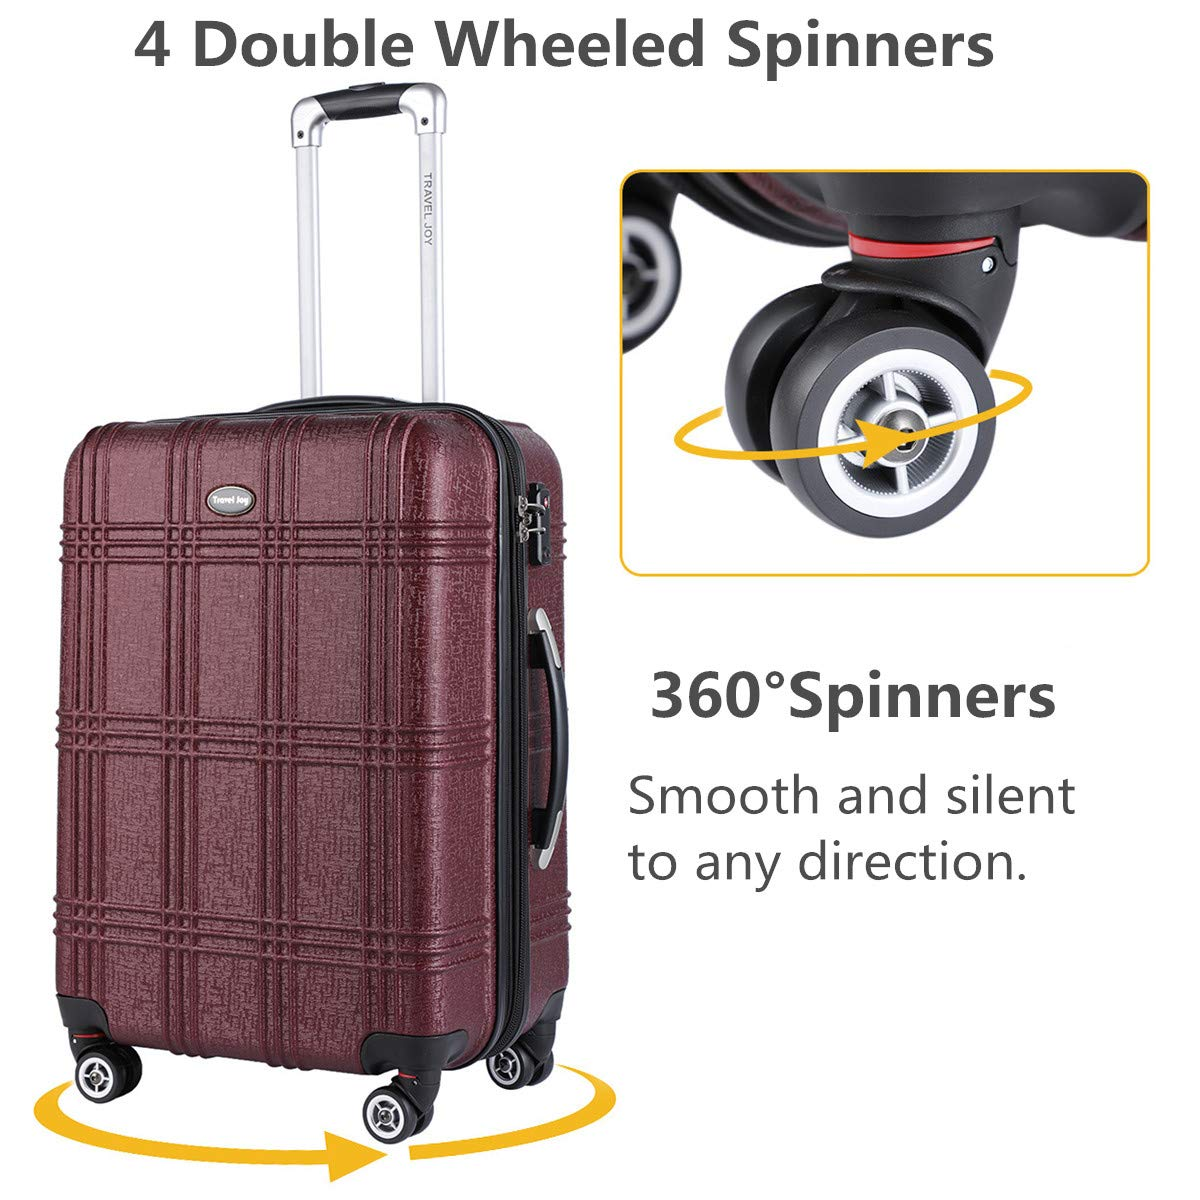 Expandable Carry On Luggage Lightweight Spinner Carry Ons TSA Hardside Luggage Suitcase, 20 inches (BURGUNDY) by Travel Joy (Image #3)